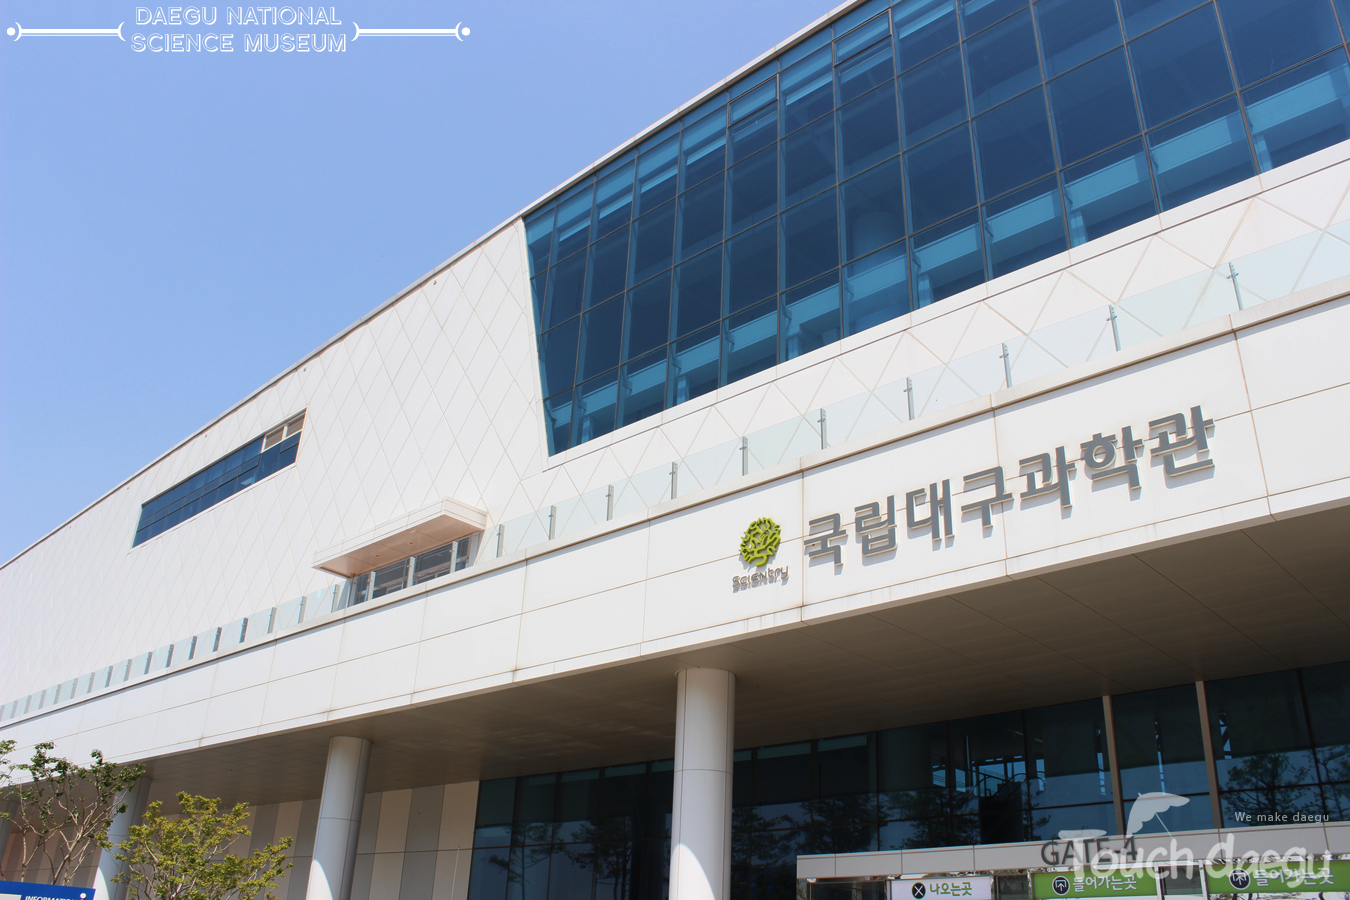 The front gate of Daegu National Science Museum